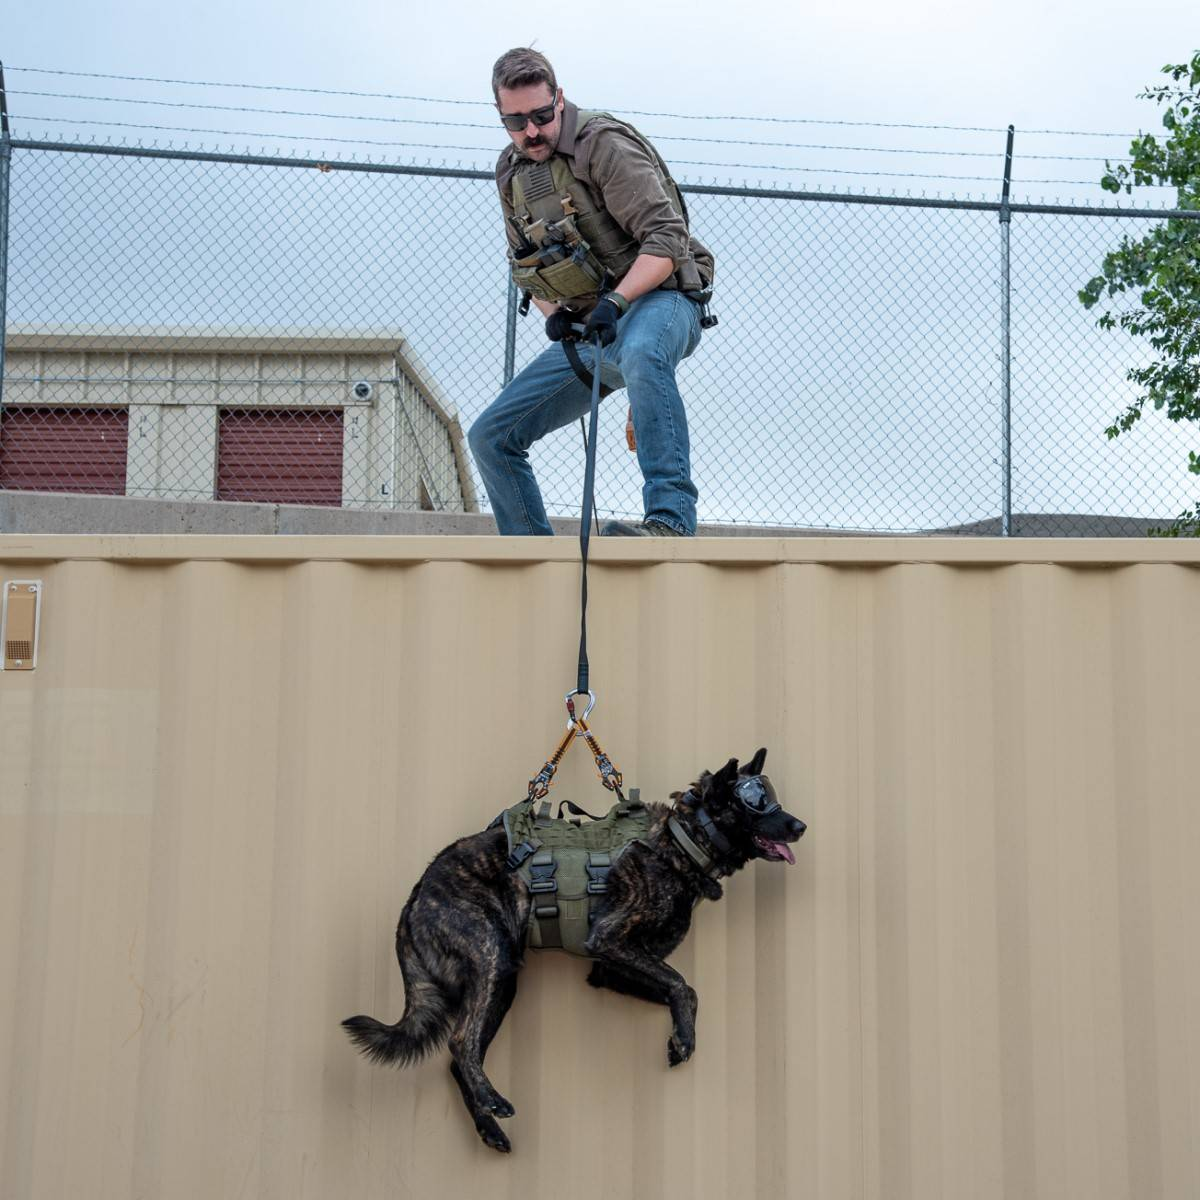 Tactical K9 being lifted